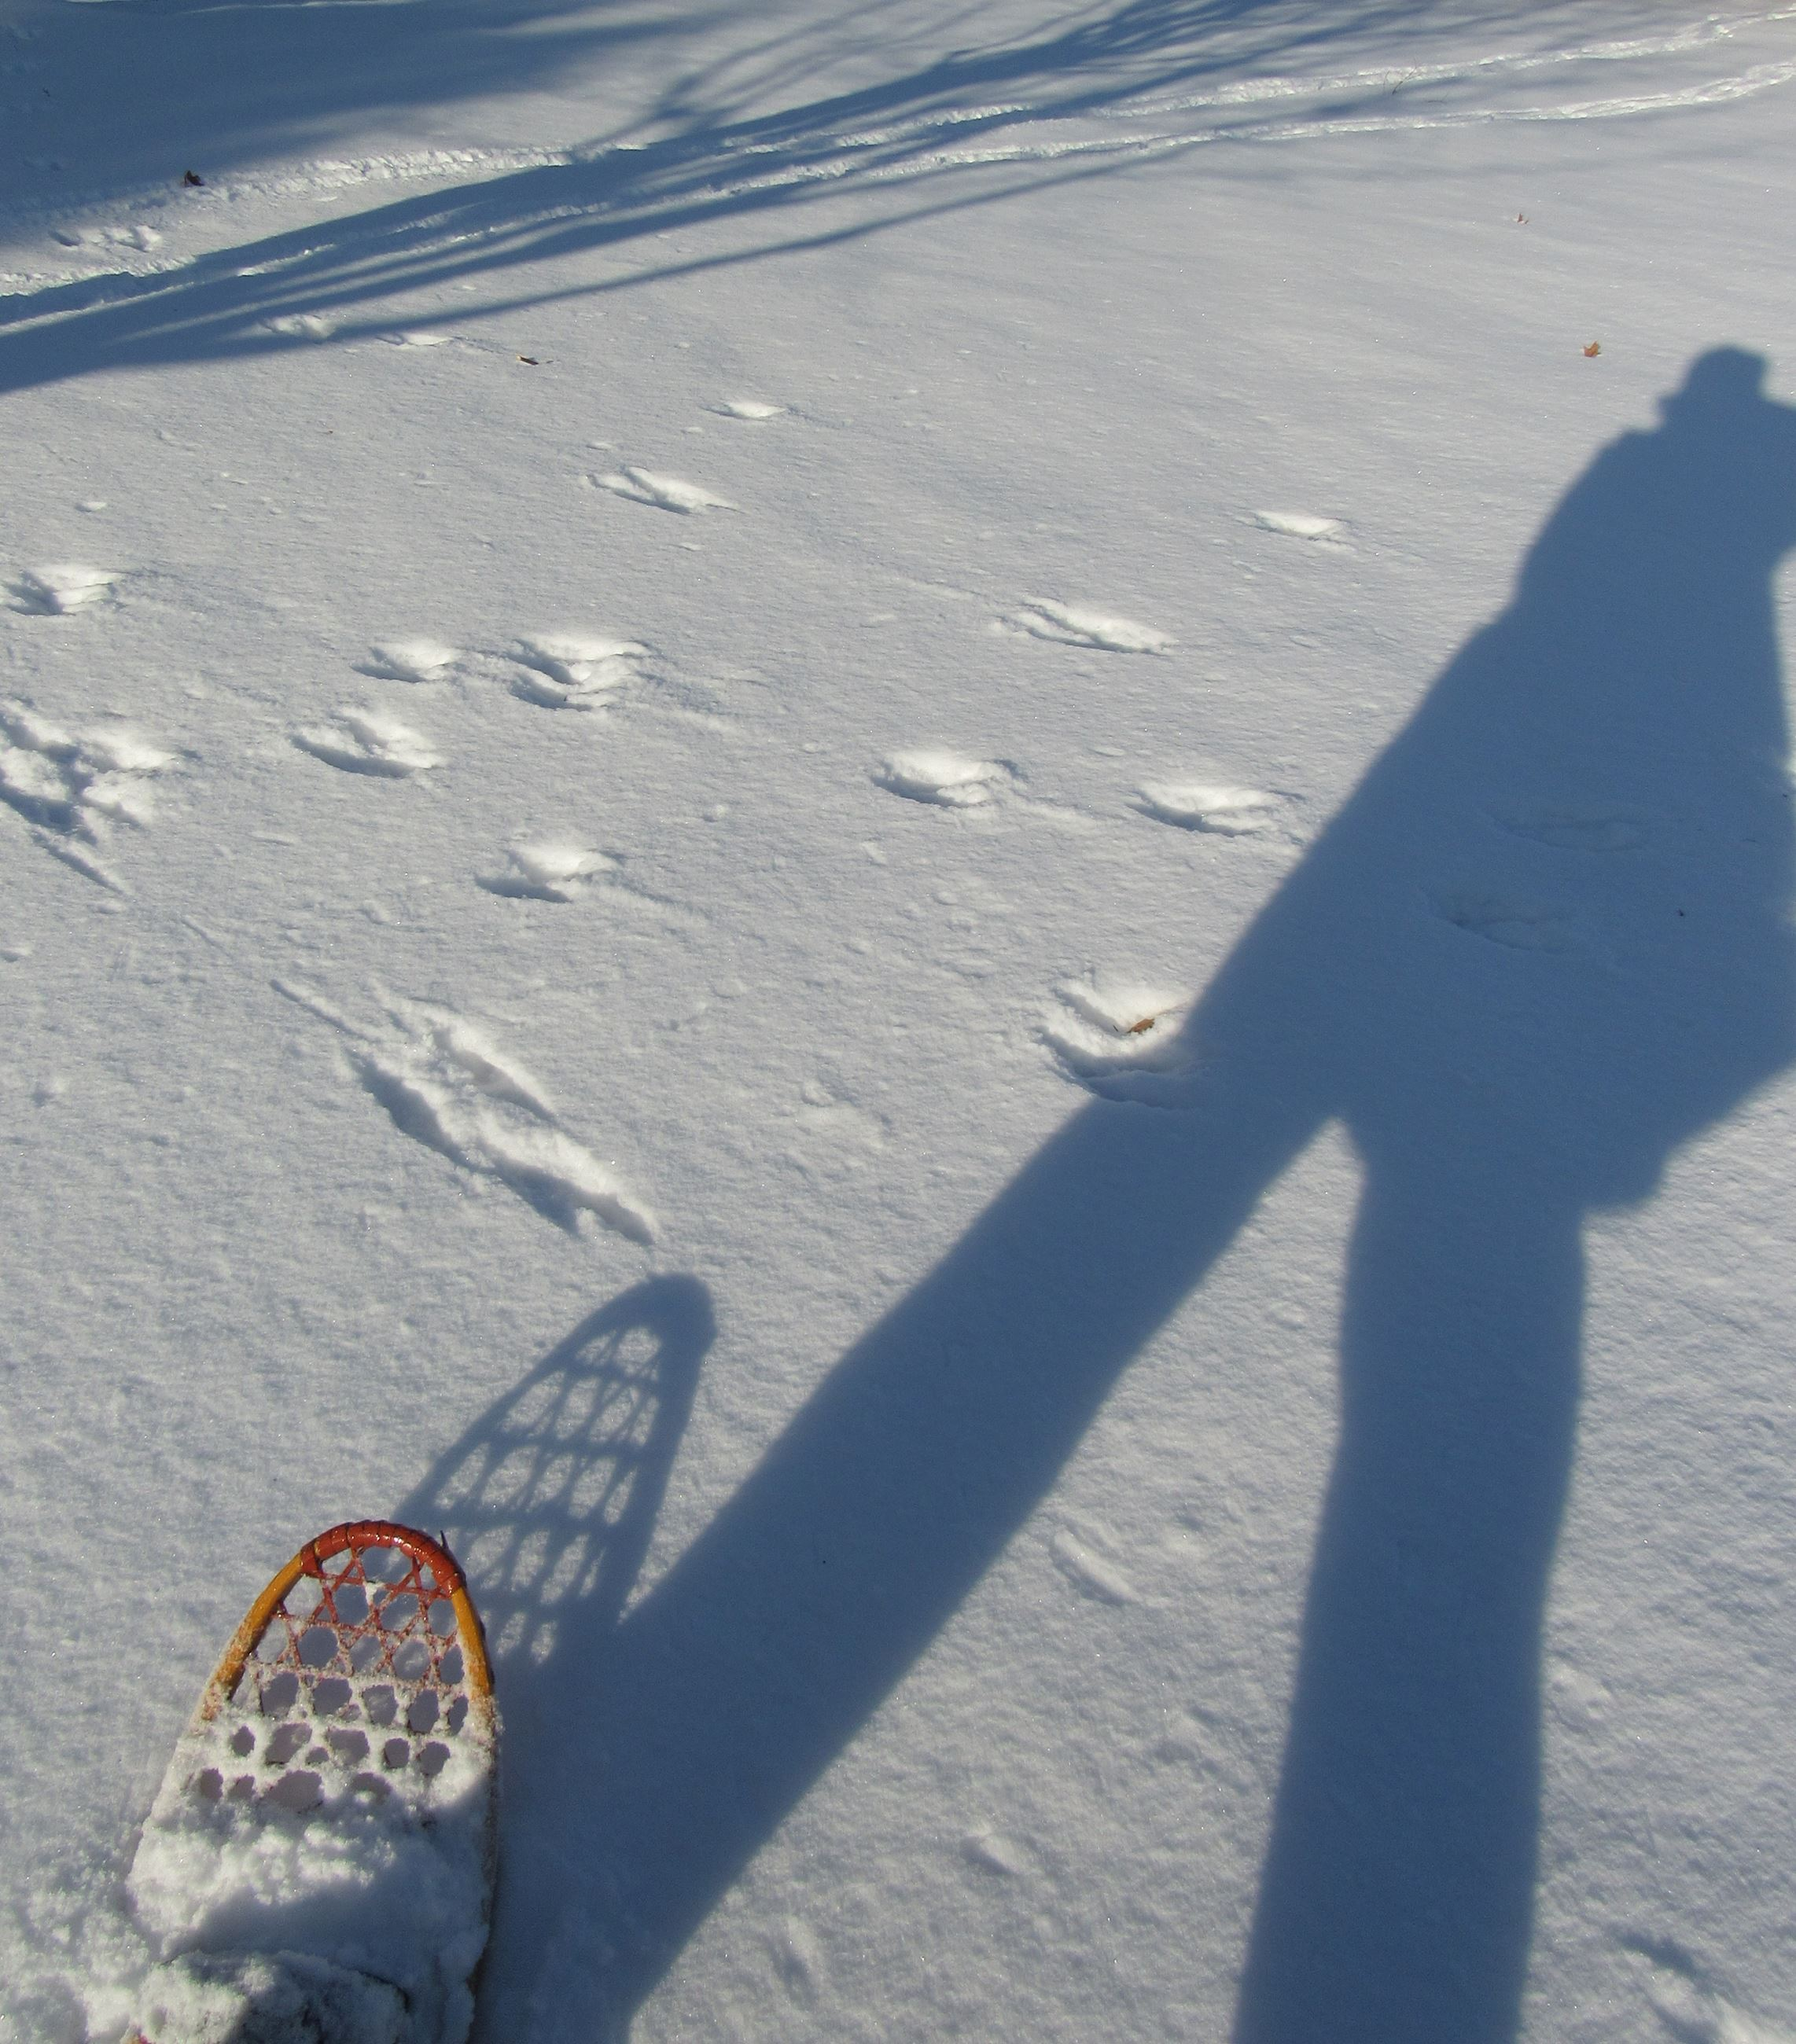 snow with a shadow of a person. There is the toe of a traditional snowshoe in the bottom left corner